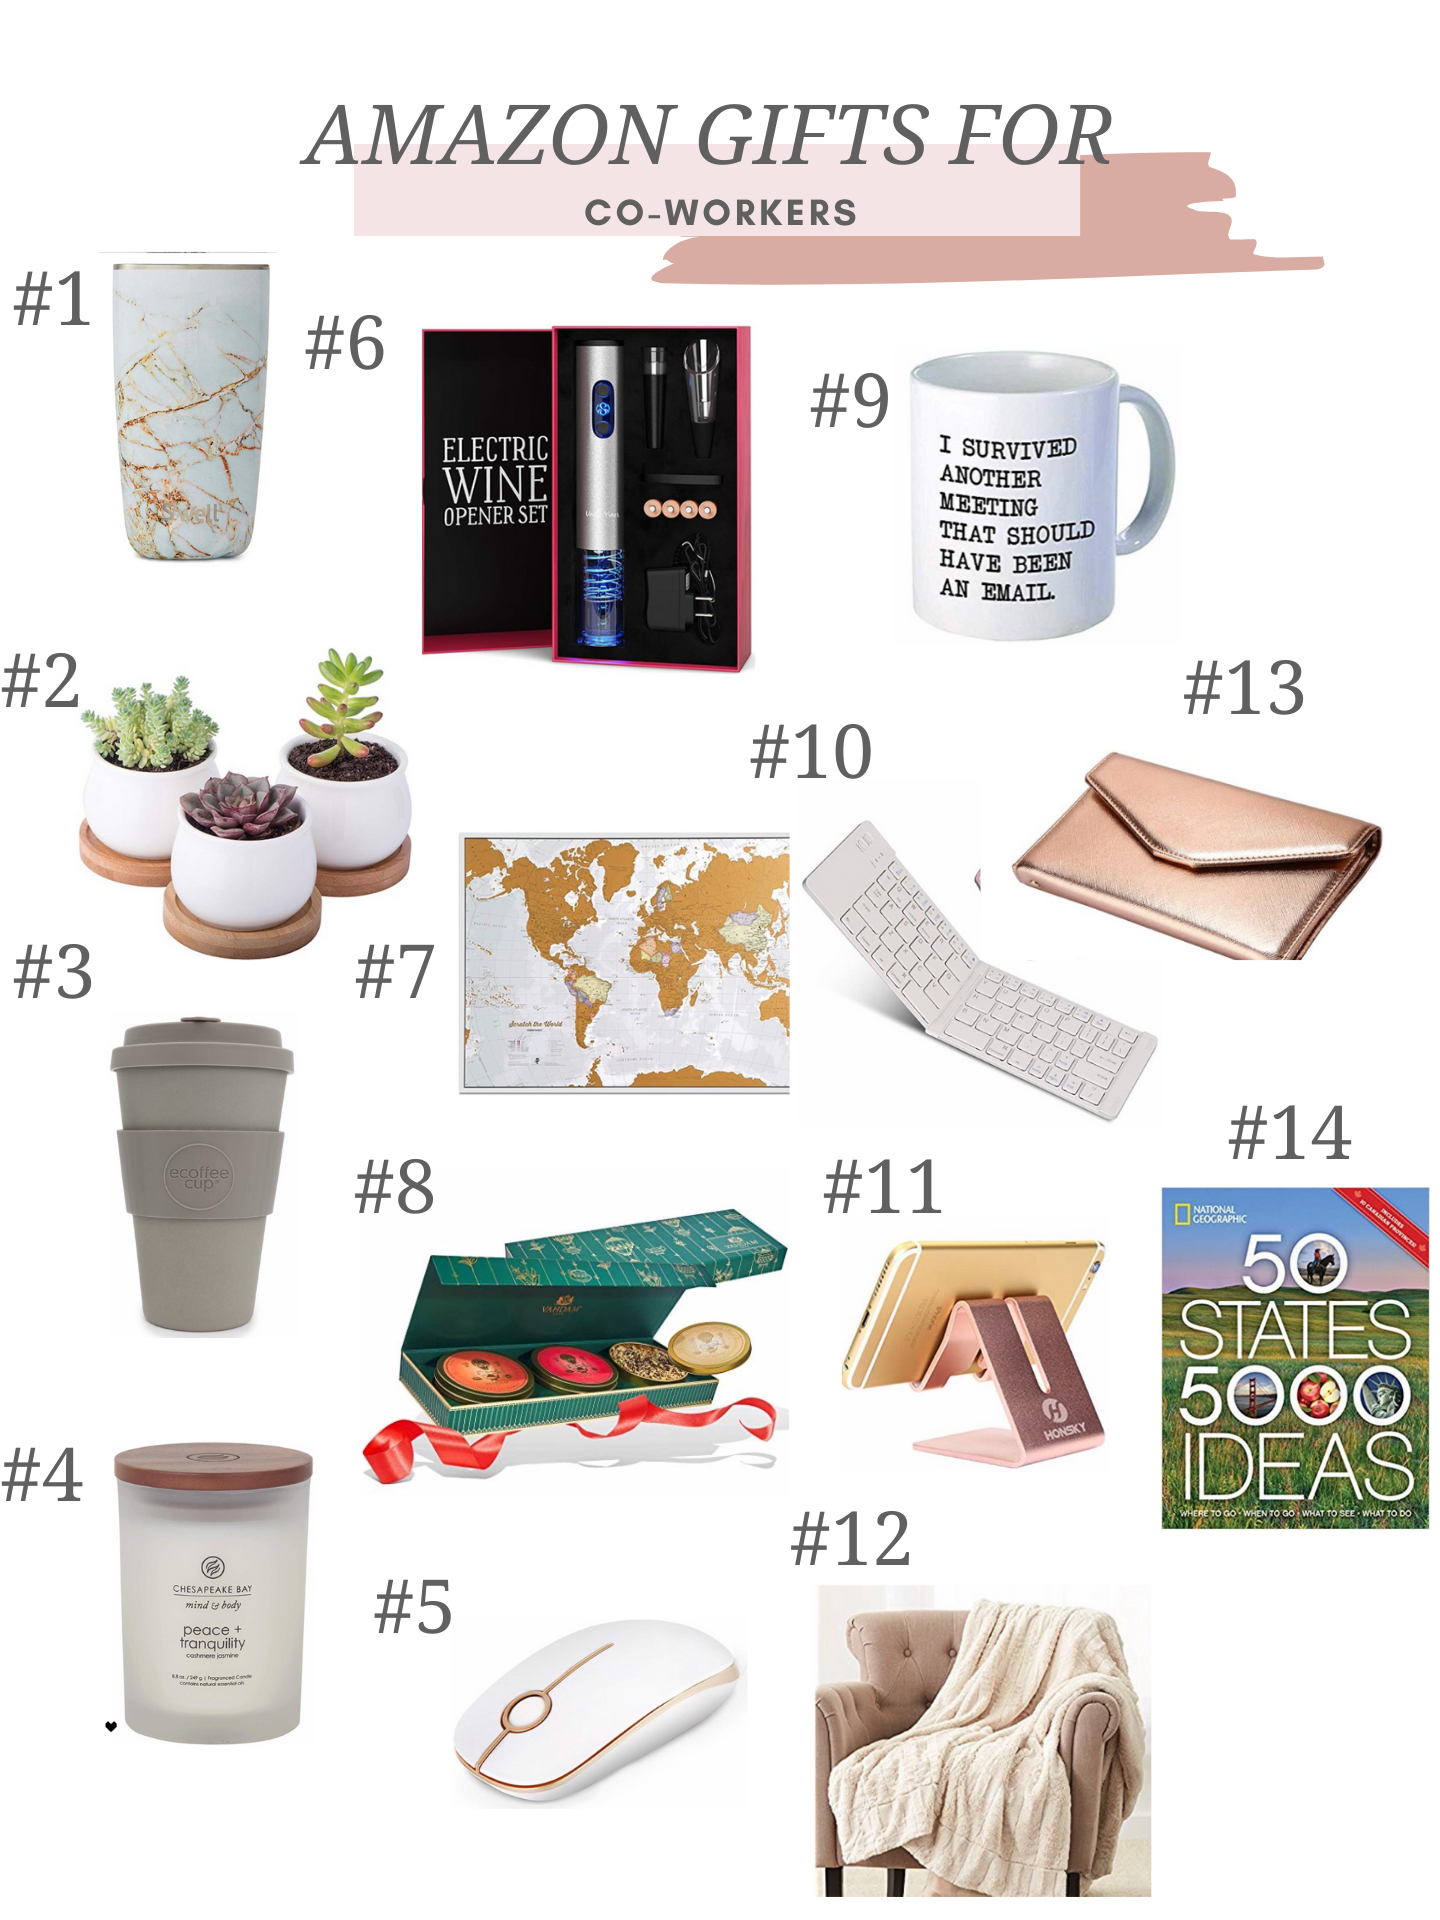 amazon gifts for co-workers